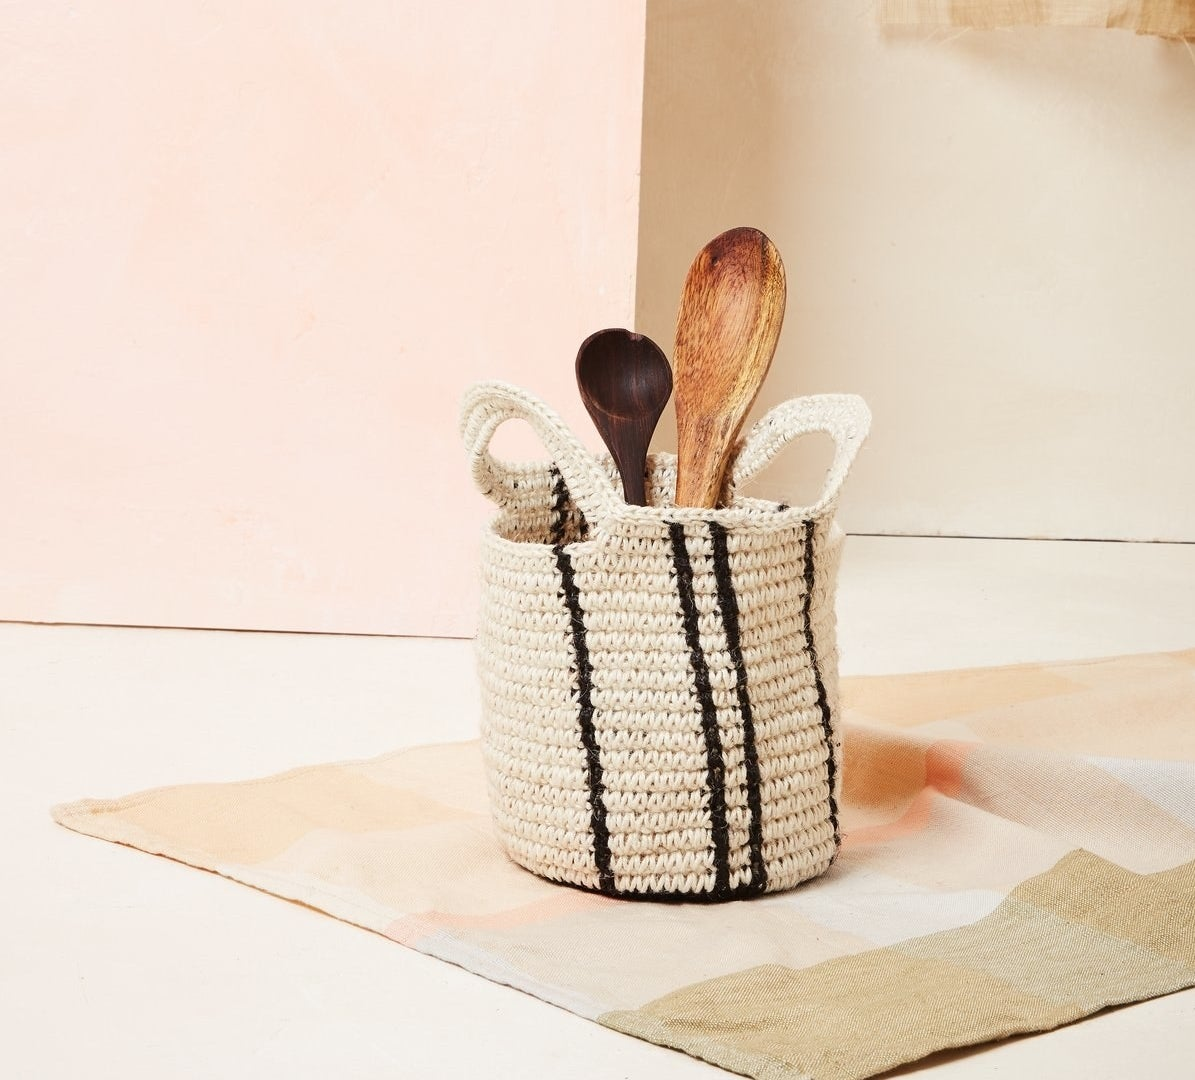 A small woven basket in white with small black vertical stripes with handles and kitchen utensils inside